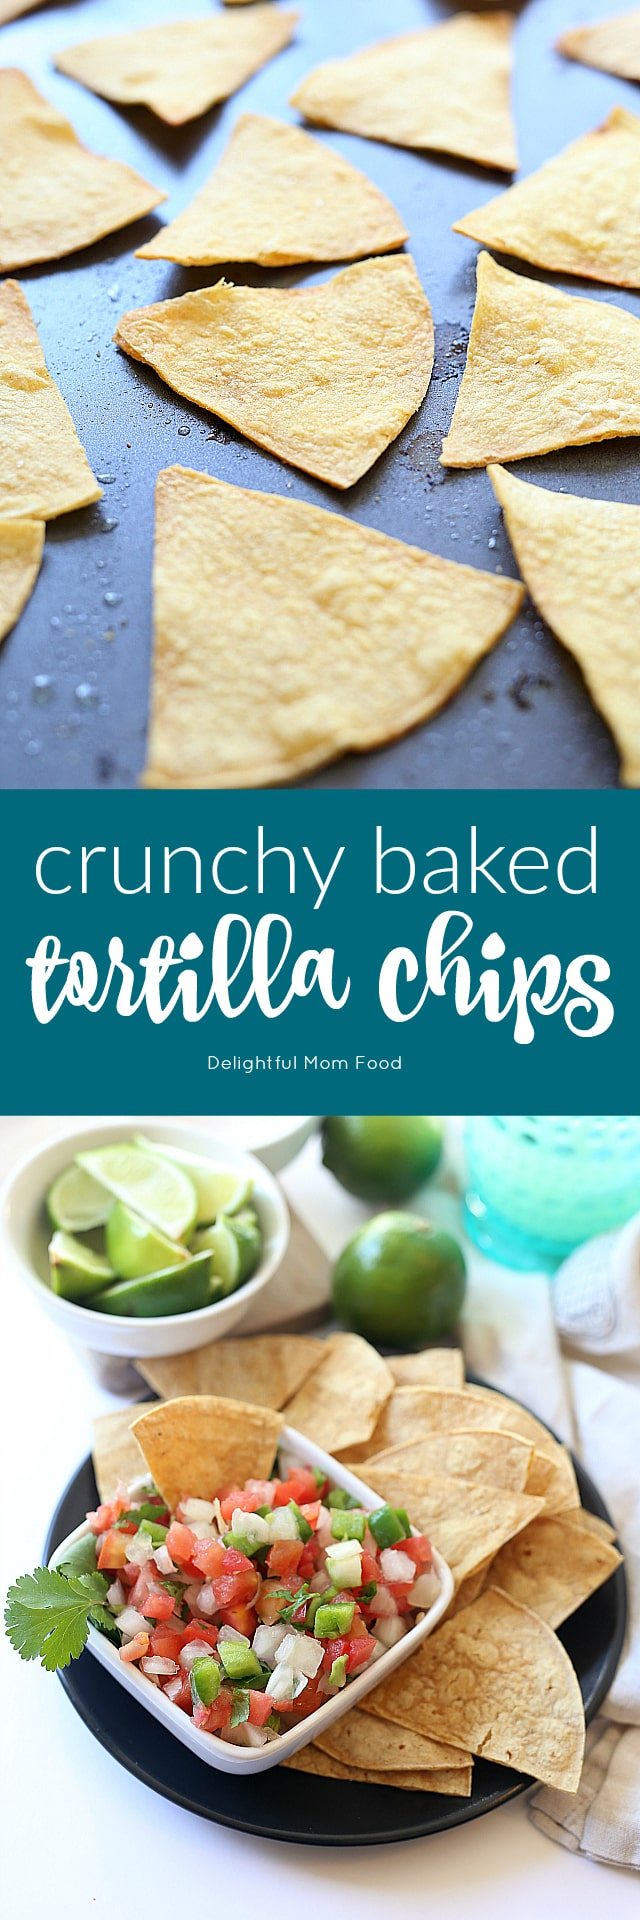 Crunchy homemade baked tortilla chips recipe! So easy, low fat, baked and not fried! | Delightful Mom Food